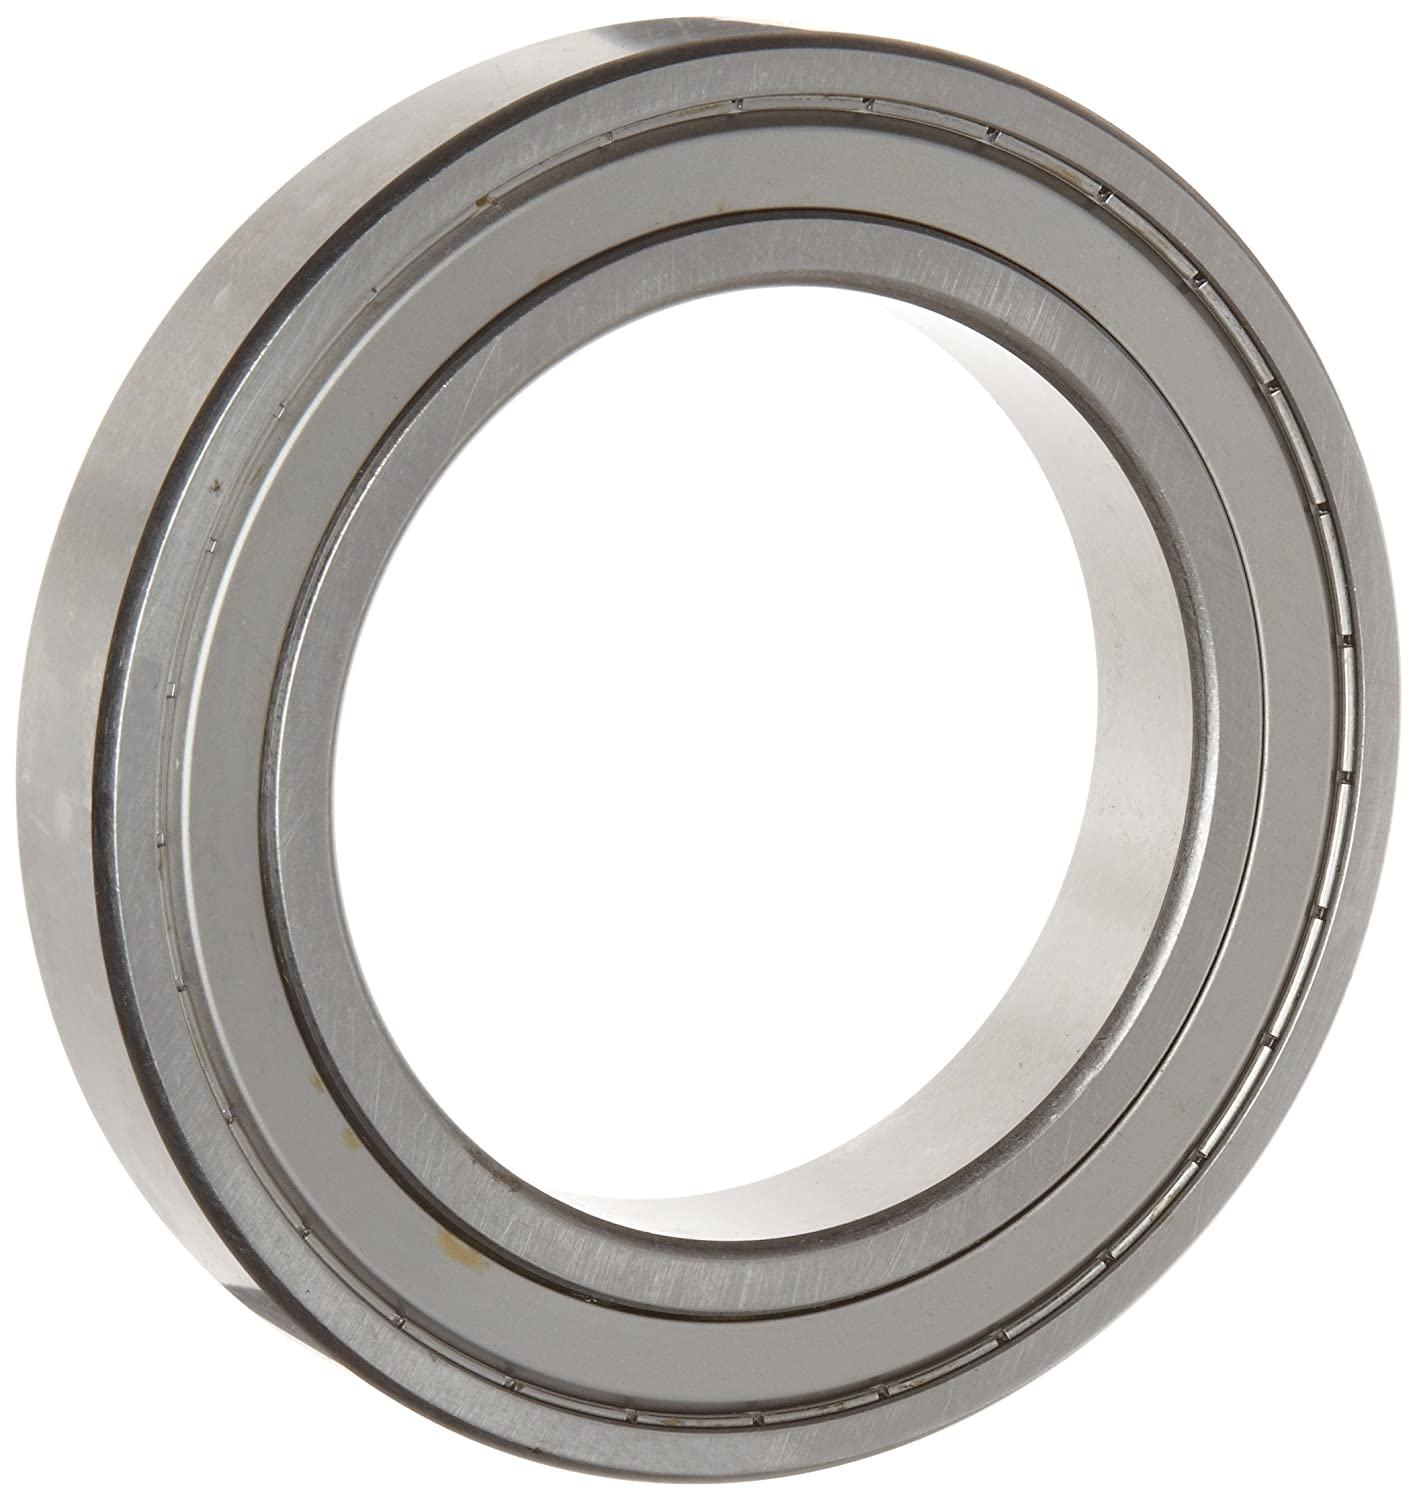 WJB 6006-ZZ Deep Groove Ball Bearing, Double Sheilded, Metric, 30mm ID, 55mm OD, 13mm Width, 2970lbf Dynamic Load Capacity, 1860lbf Static Load Capacity